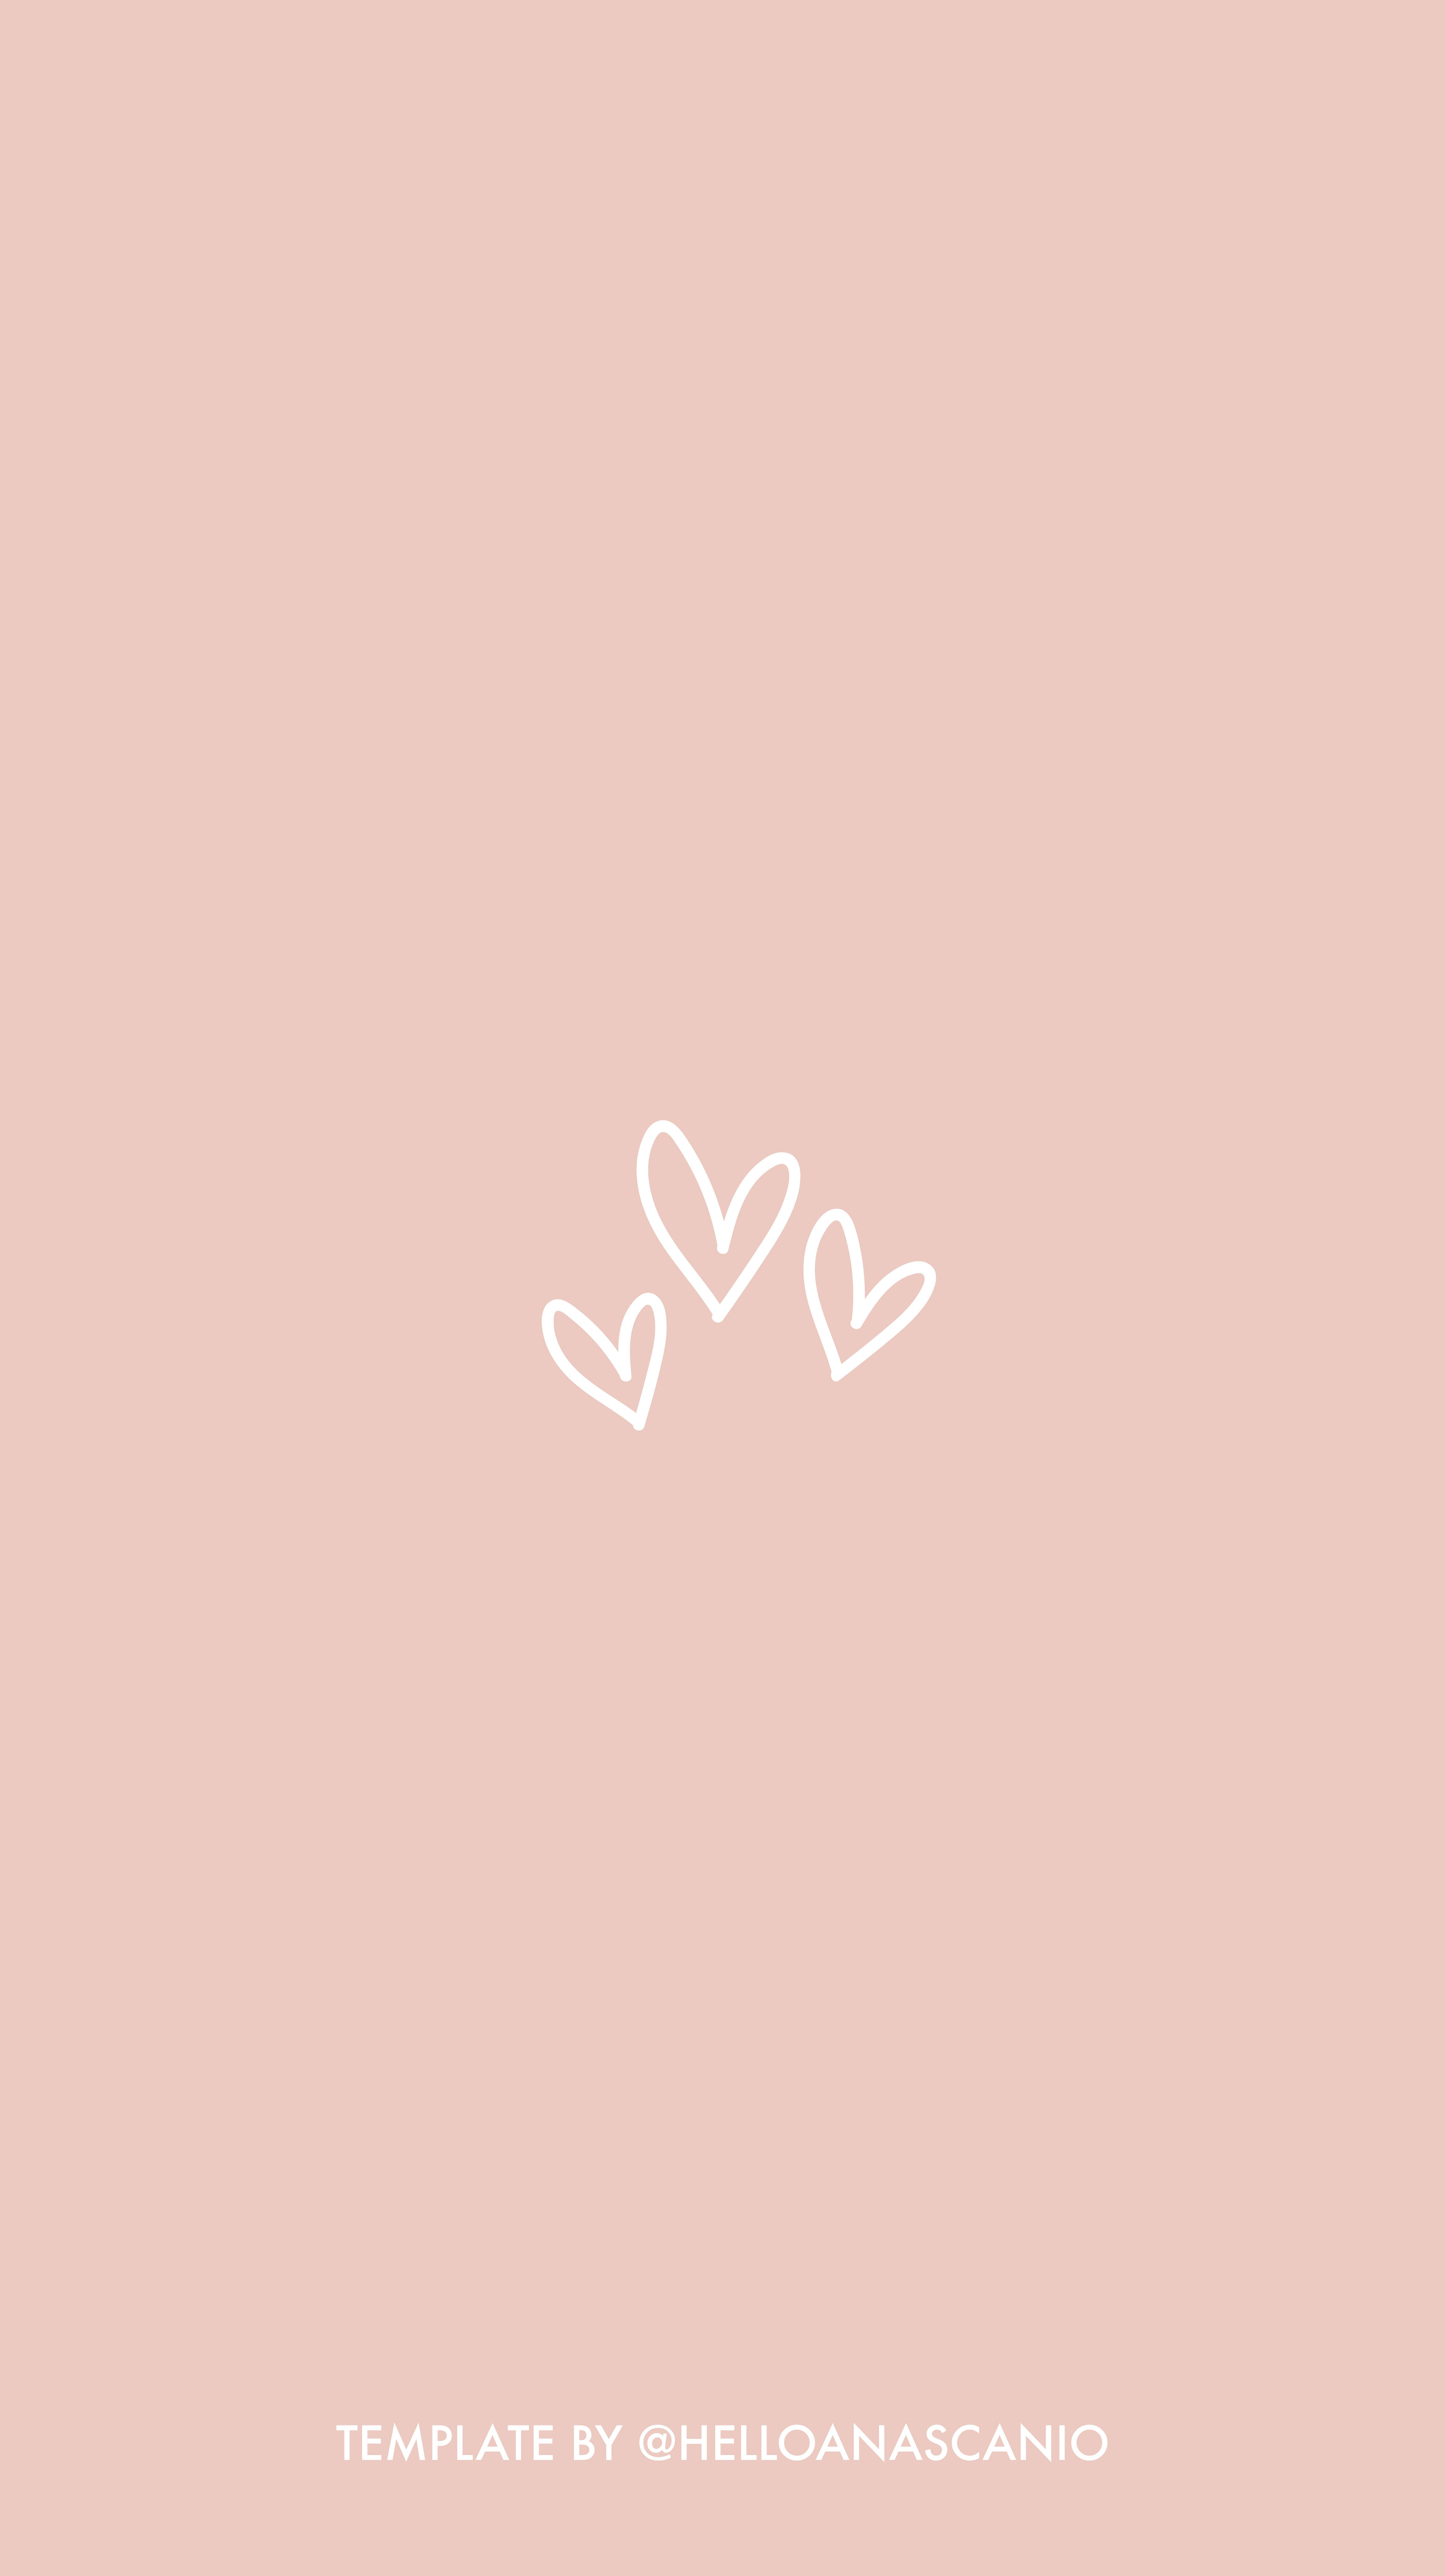 Love hearts template for Instagram Highlights Stories by